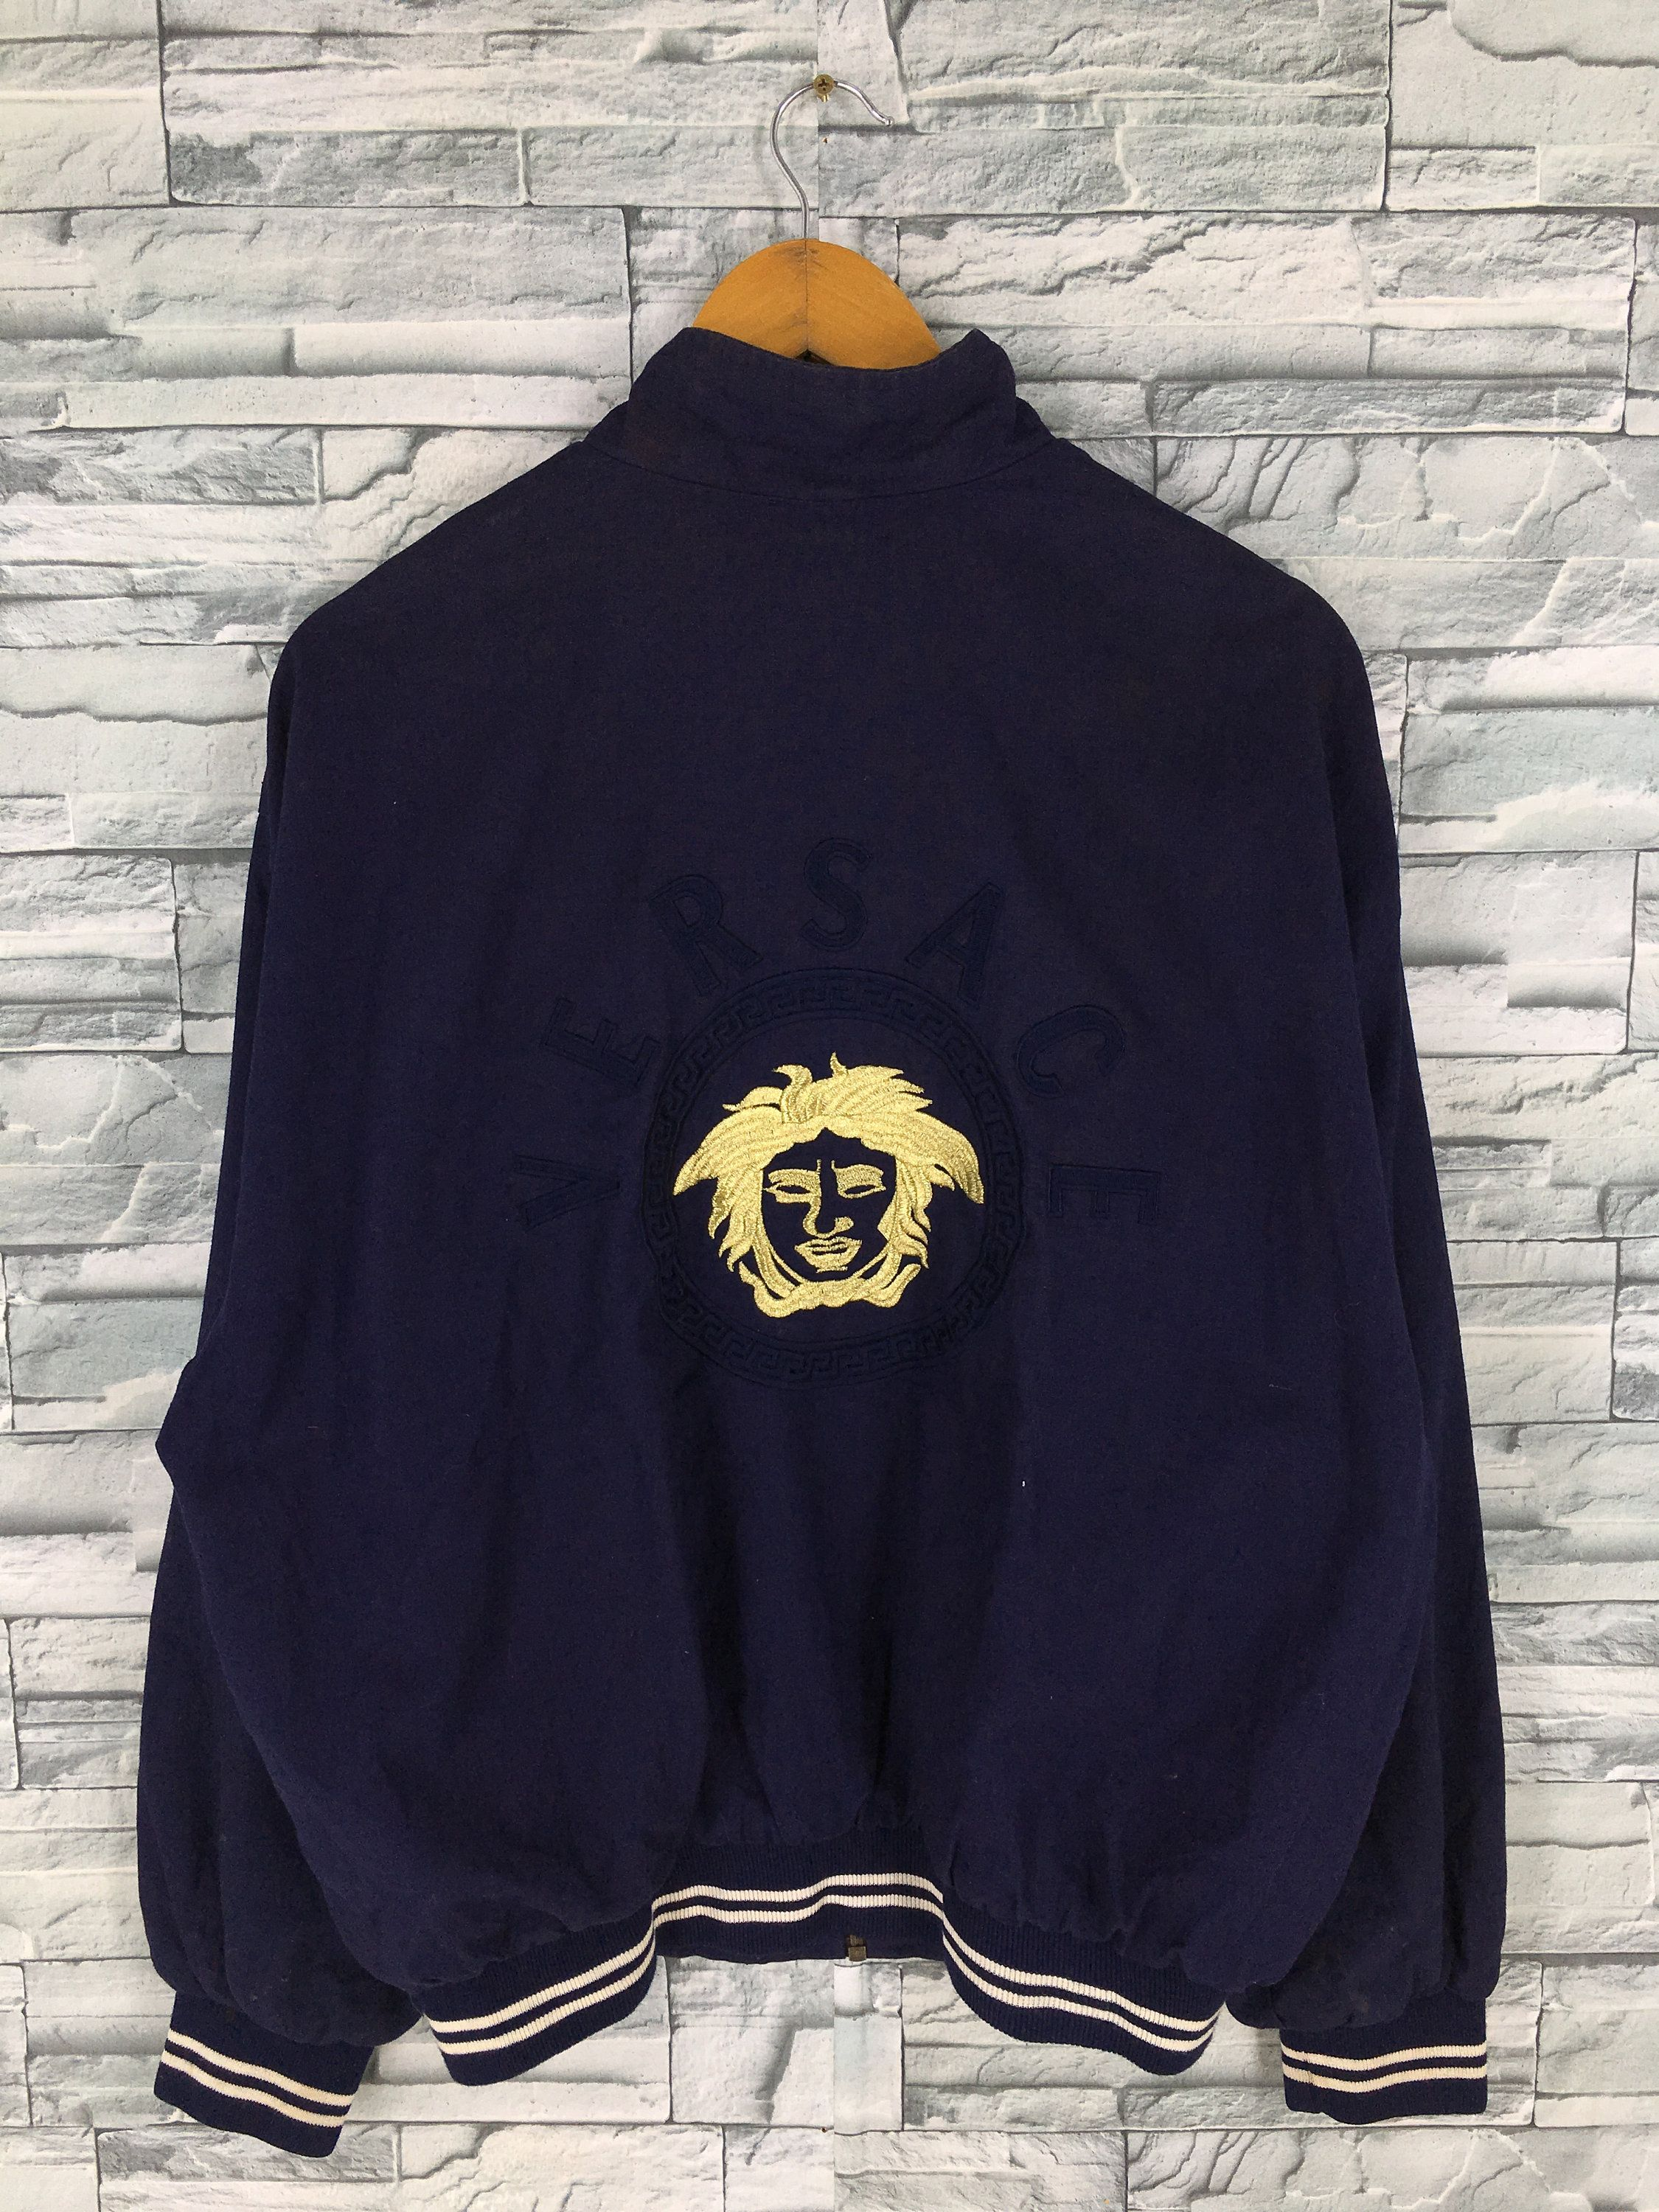 Versace Jeans Couture Jacket Large Men Women Dark Blue Gianni Versace Medusa Embroidery Made In Italy V Unique Sweatshirt Couture Jackets Versace Jeans Couture